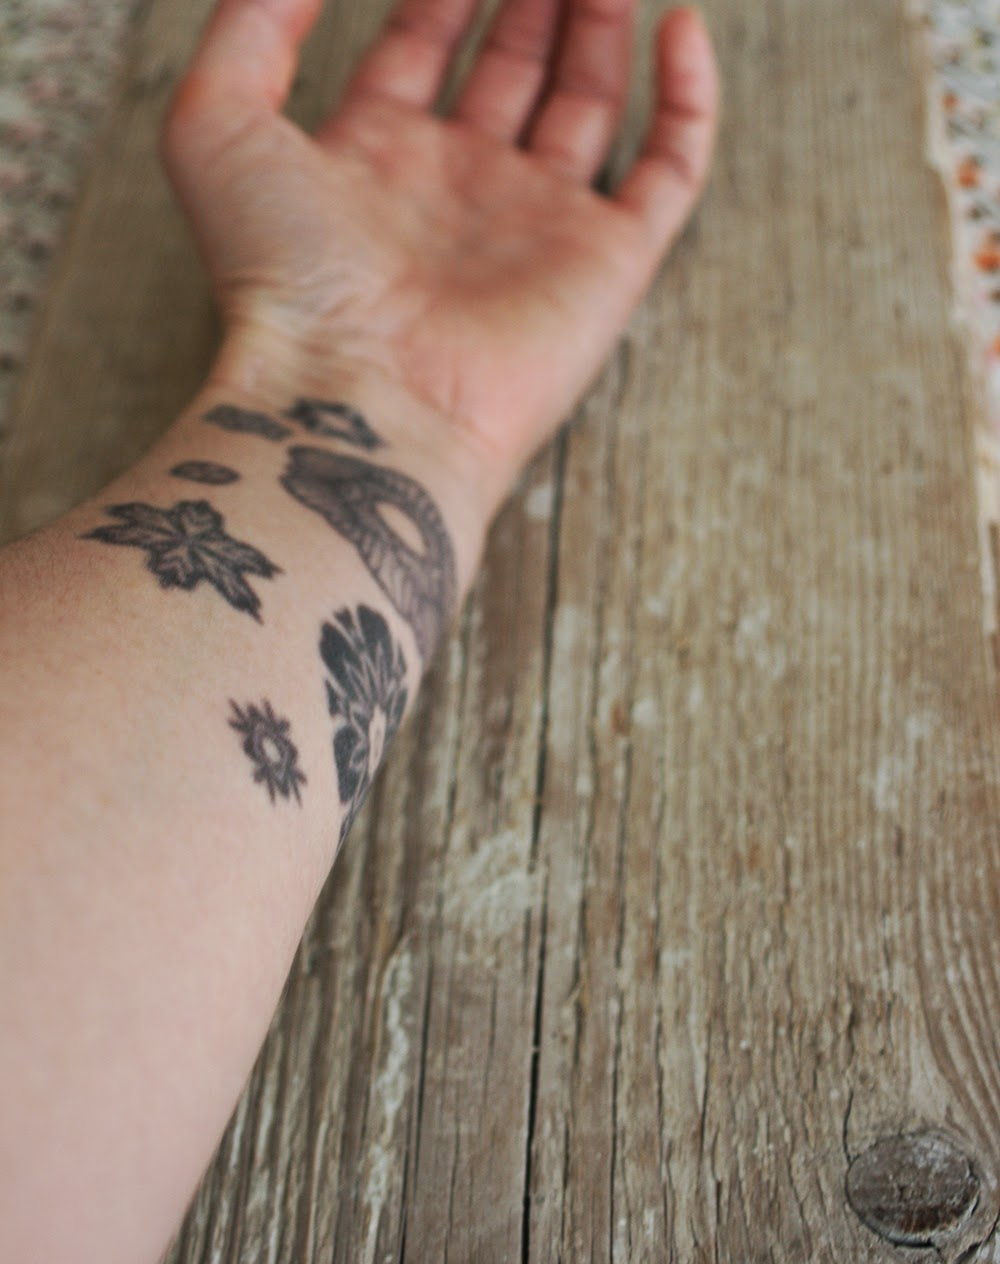 https://www.etsy.com/listing/192513813/seven-stars-temporary-tattoos?ref=shop_home_active_1&ga_search_query=tattoos